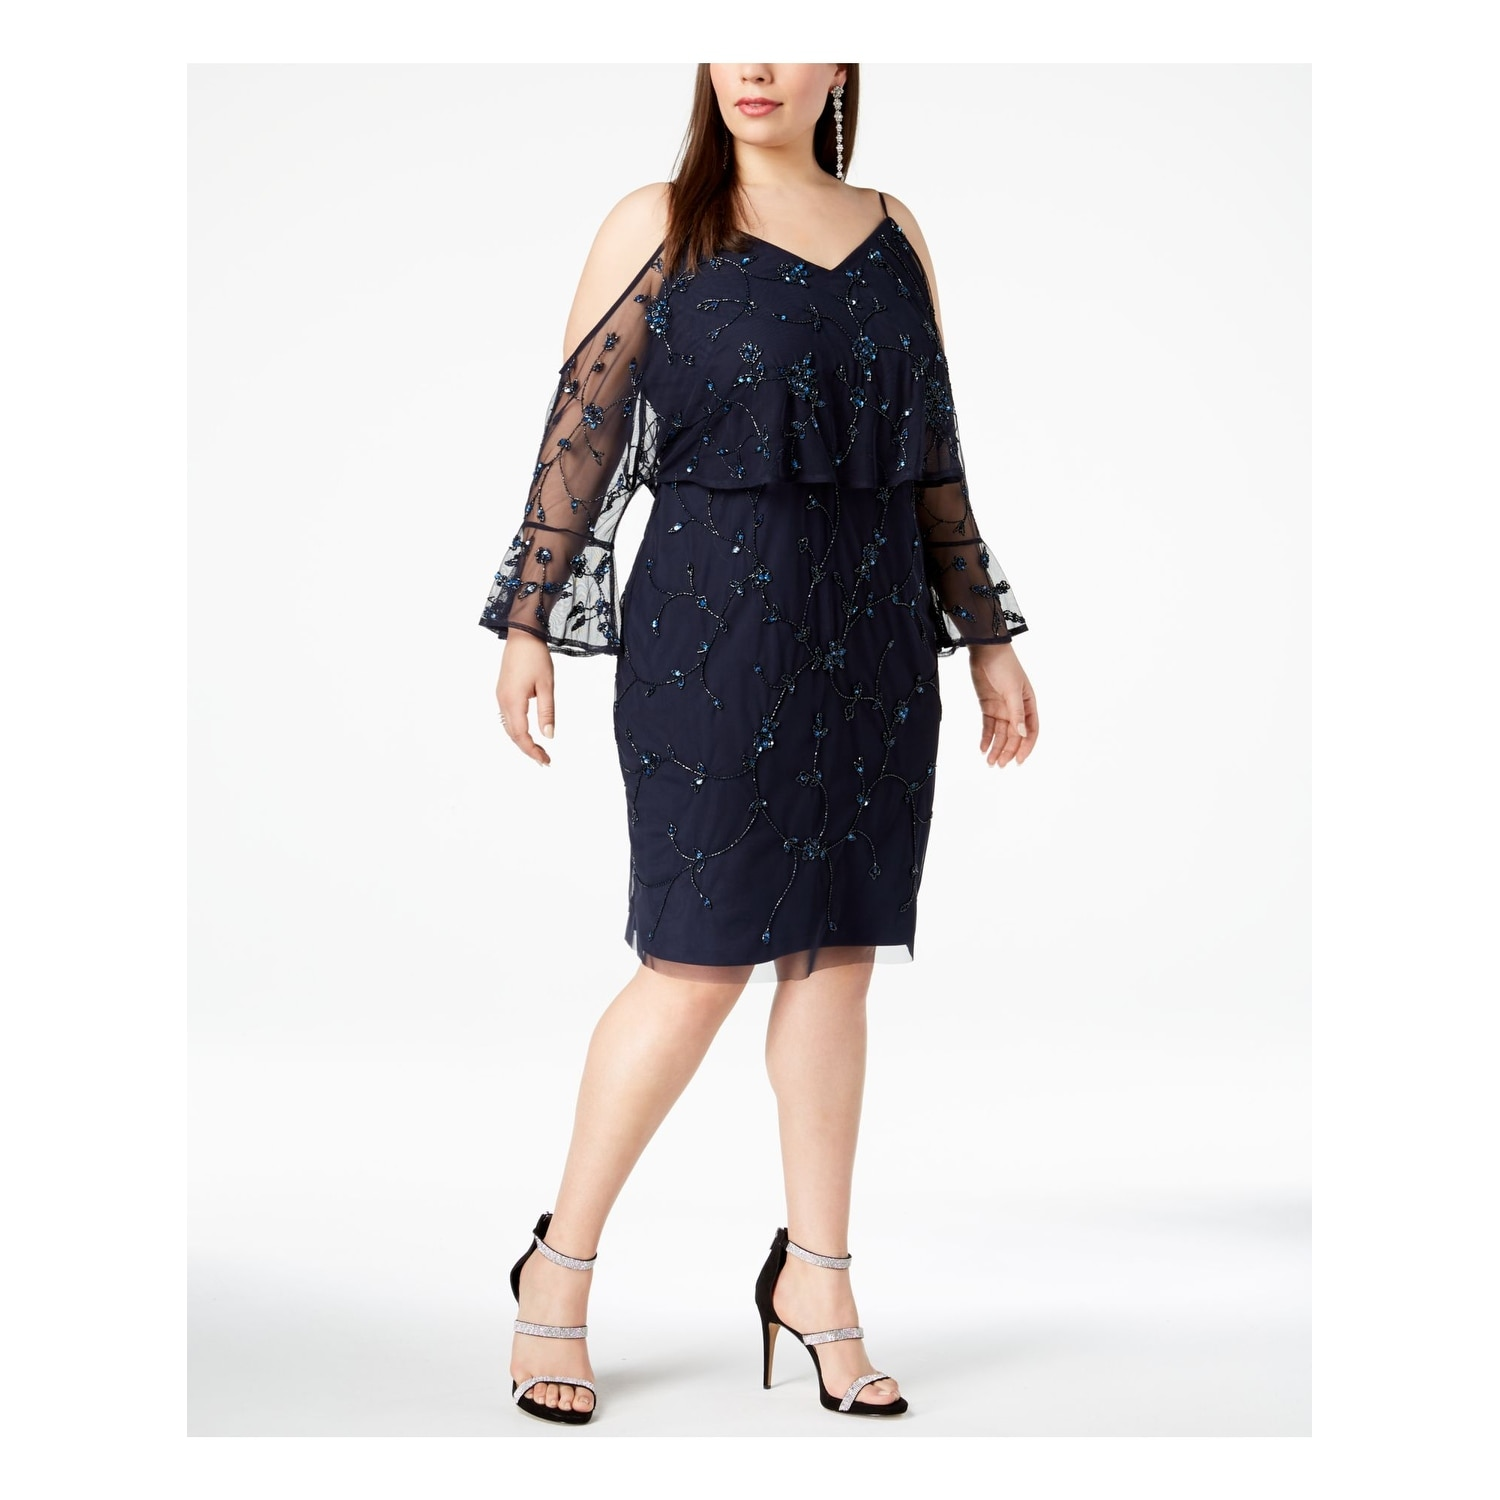 ADRIANNA PAPELL Womens Navy Embellished Cold Shoulder Long Sleeve V Neck  Knee Length Evening Dress Plus Size: 22W